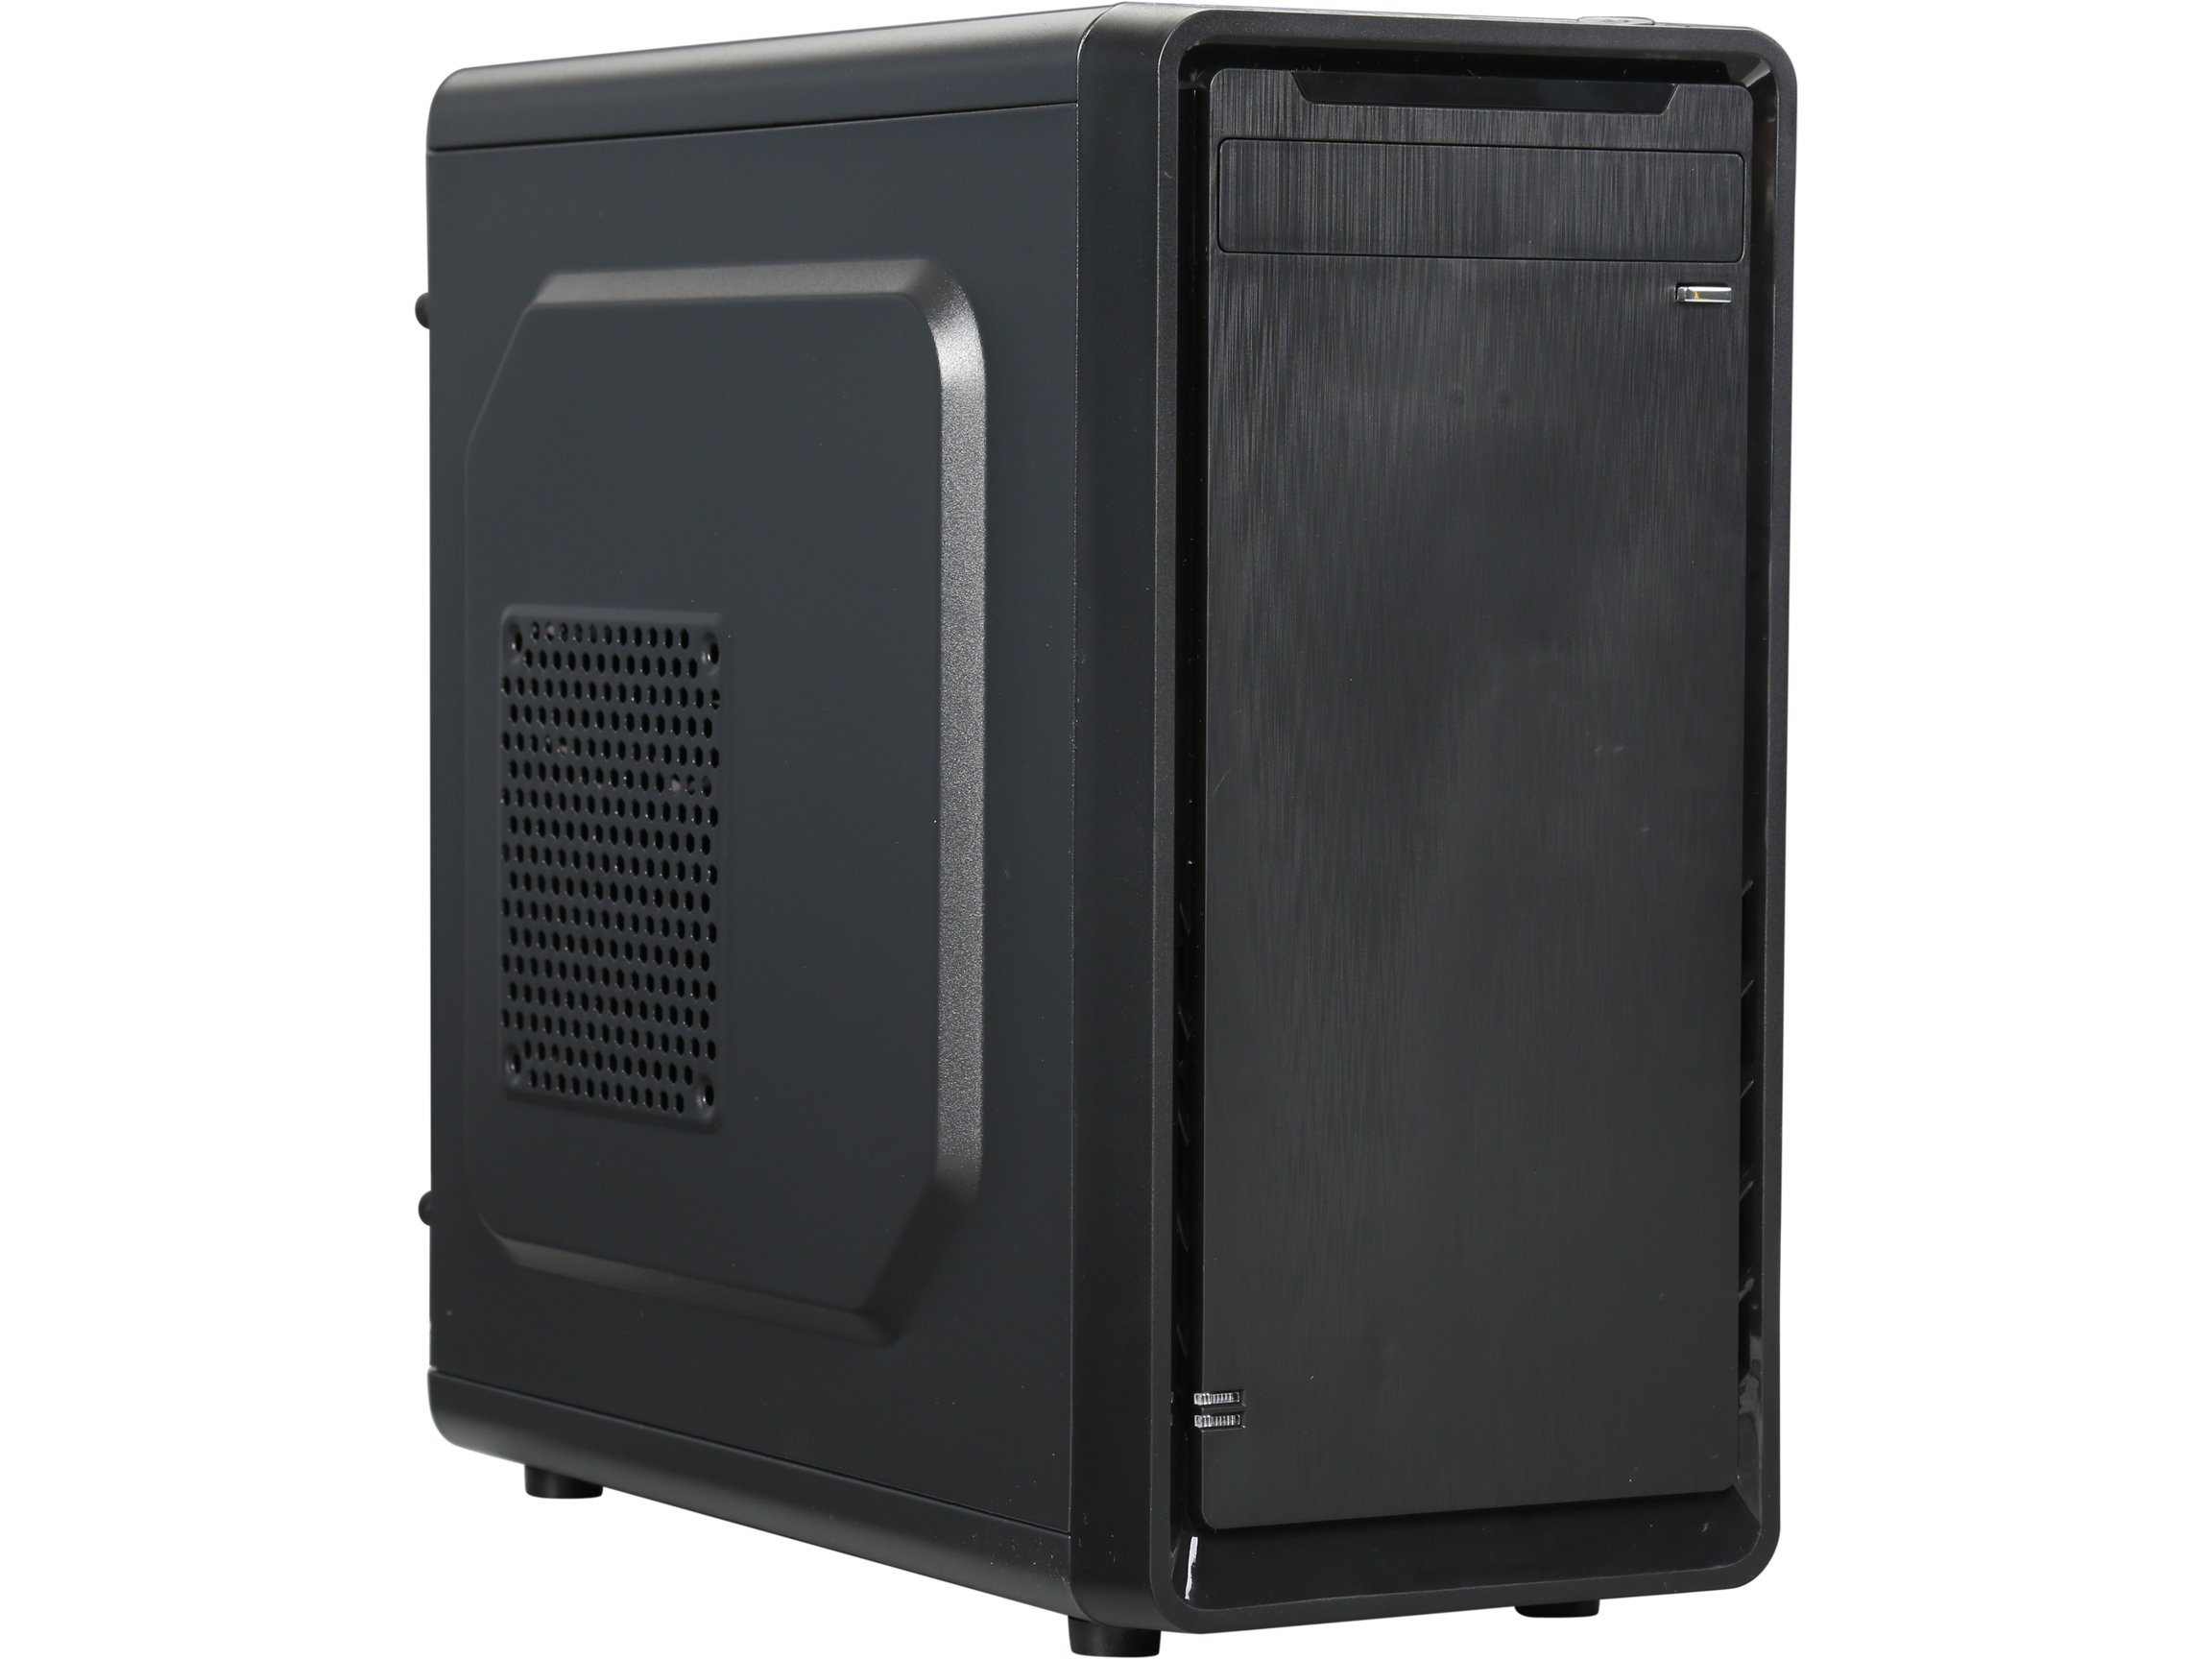 Rosewill Micro ATX Mini Tower Computer Case, Steel and plastic computer case with 1 x 80mm rear fan, Top I/O ports: 1x USB3.0, 2x USB 2.0 and Audio In/Out ports (SRM-01)